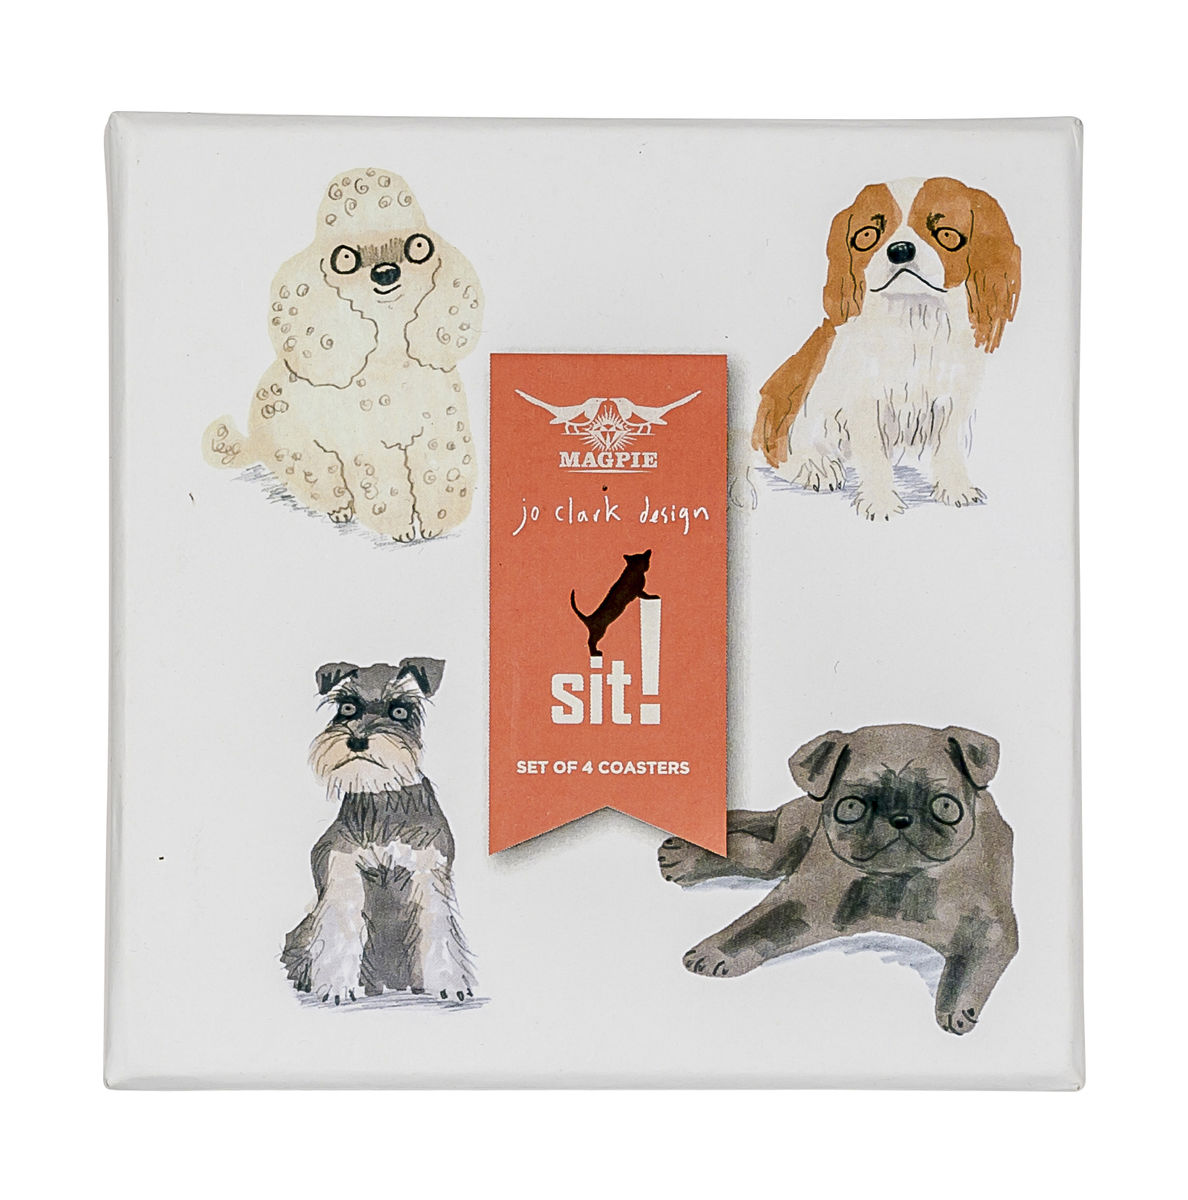 Sit! Set of 4 Coasters by Magpie - product image